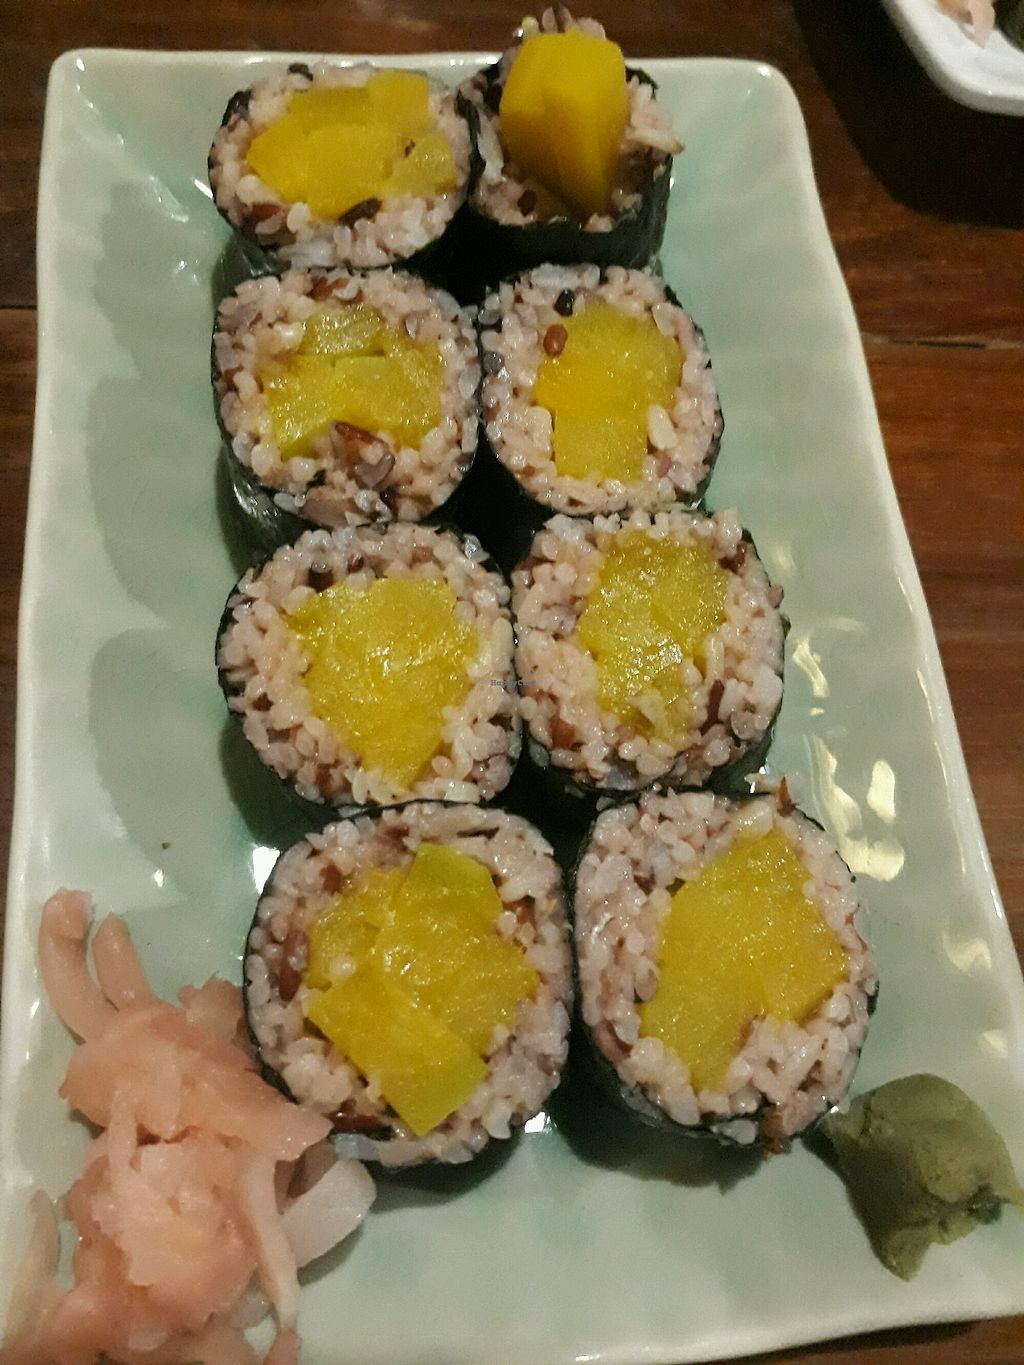 """Photo of Aum  by <a href=""""/members/profile/LilacHippy"""">LilacHippy</a> <br/>Pumpkin sushi <br/> September 25, 2017  - <a href='/contact/abuse/image/360/308061'>Report</a>"""